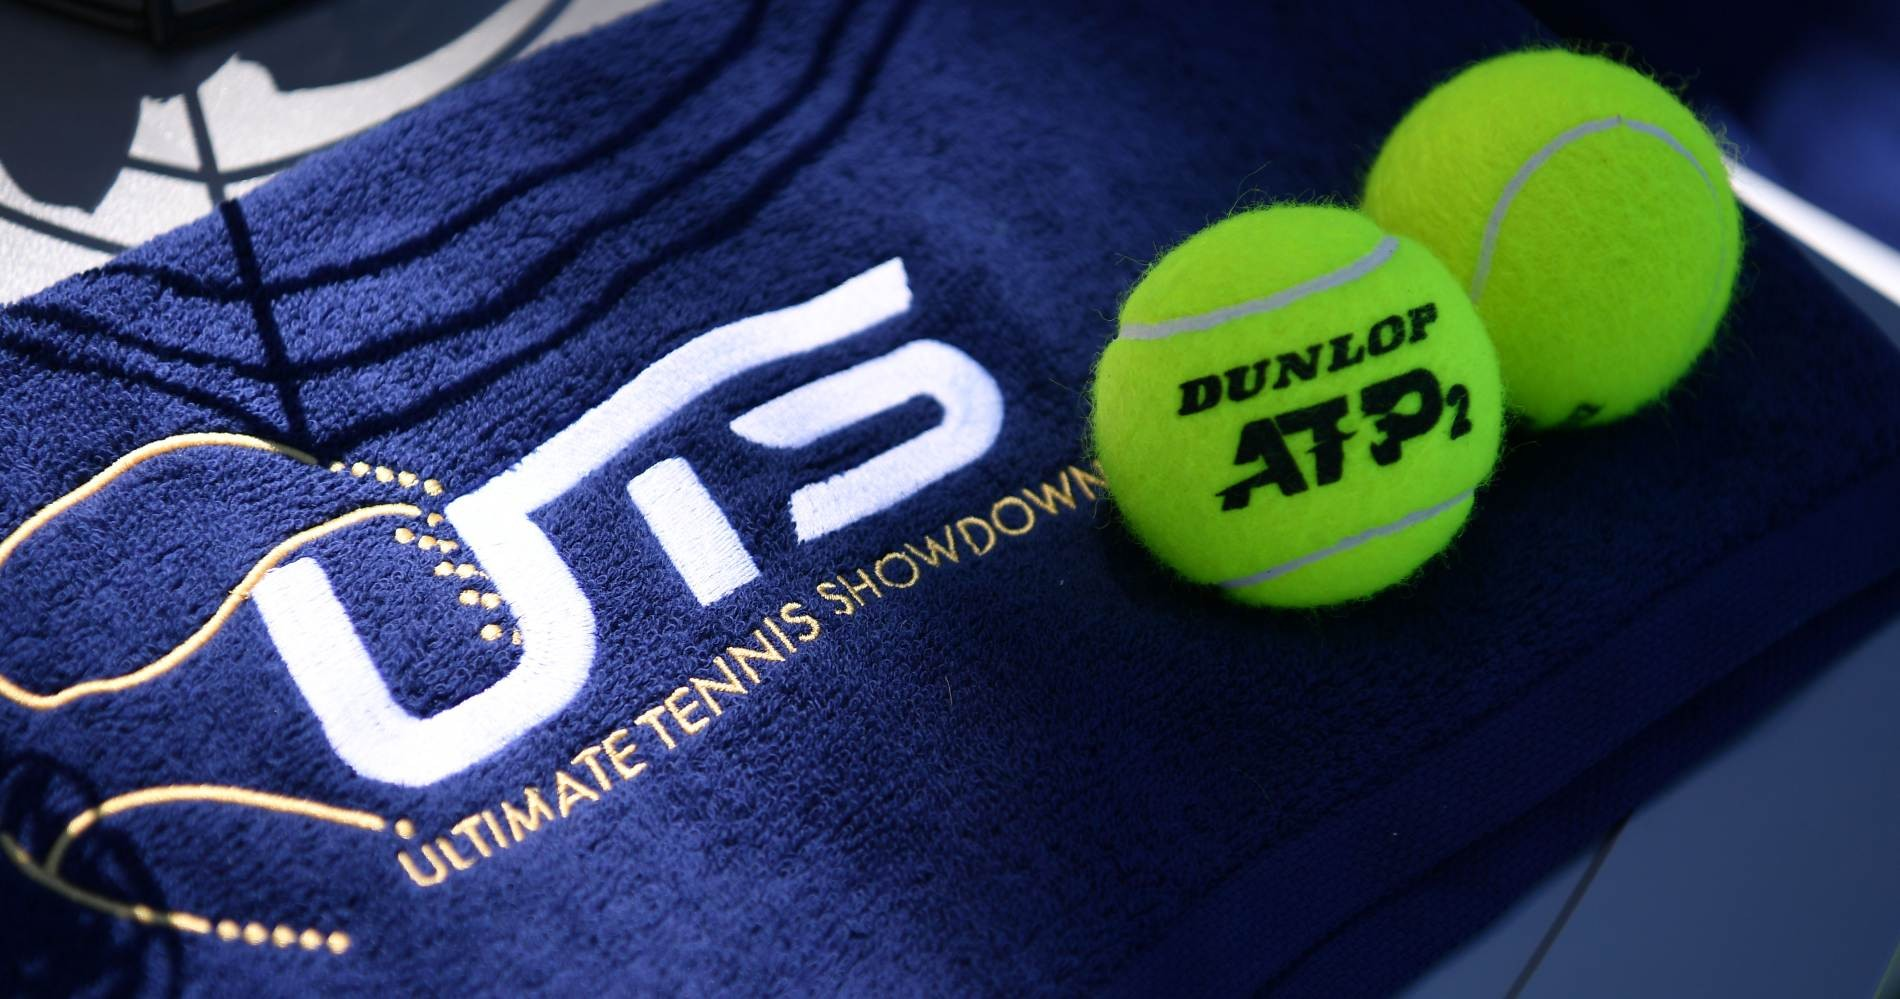 Here are the results of the Ultimate Tennis Showdown